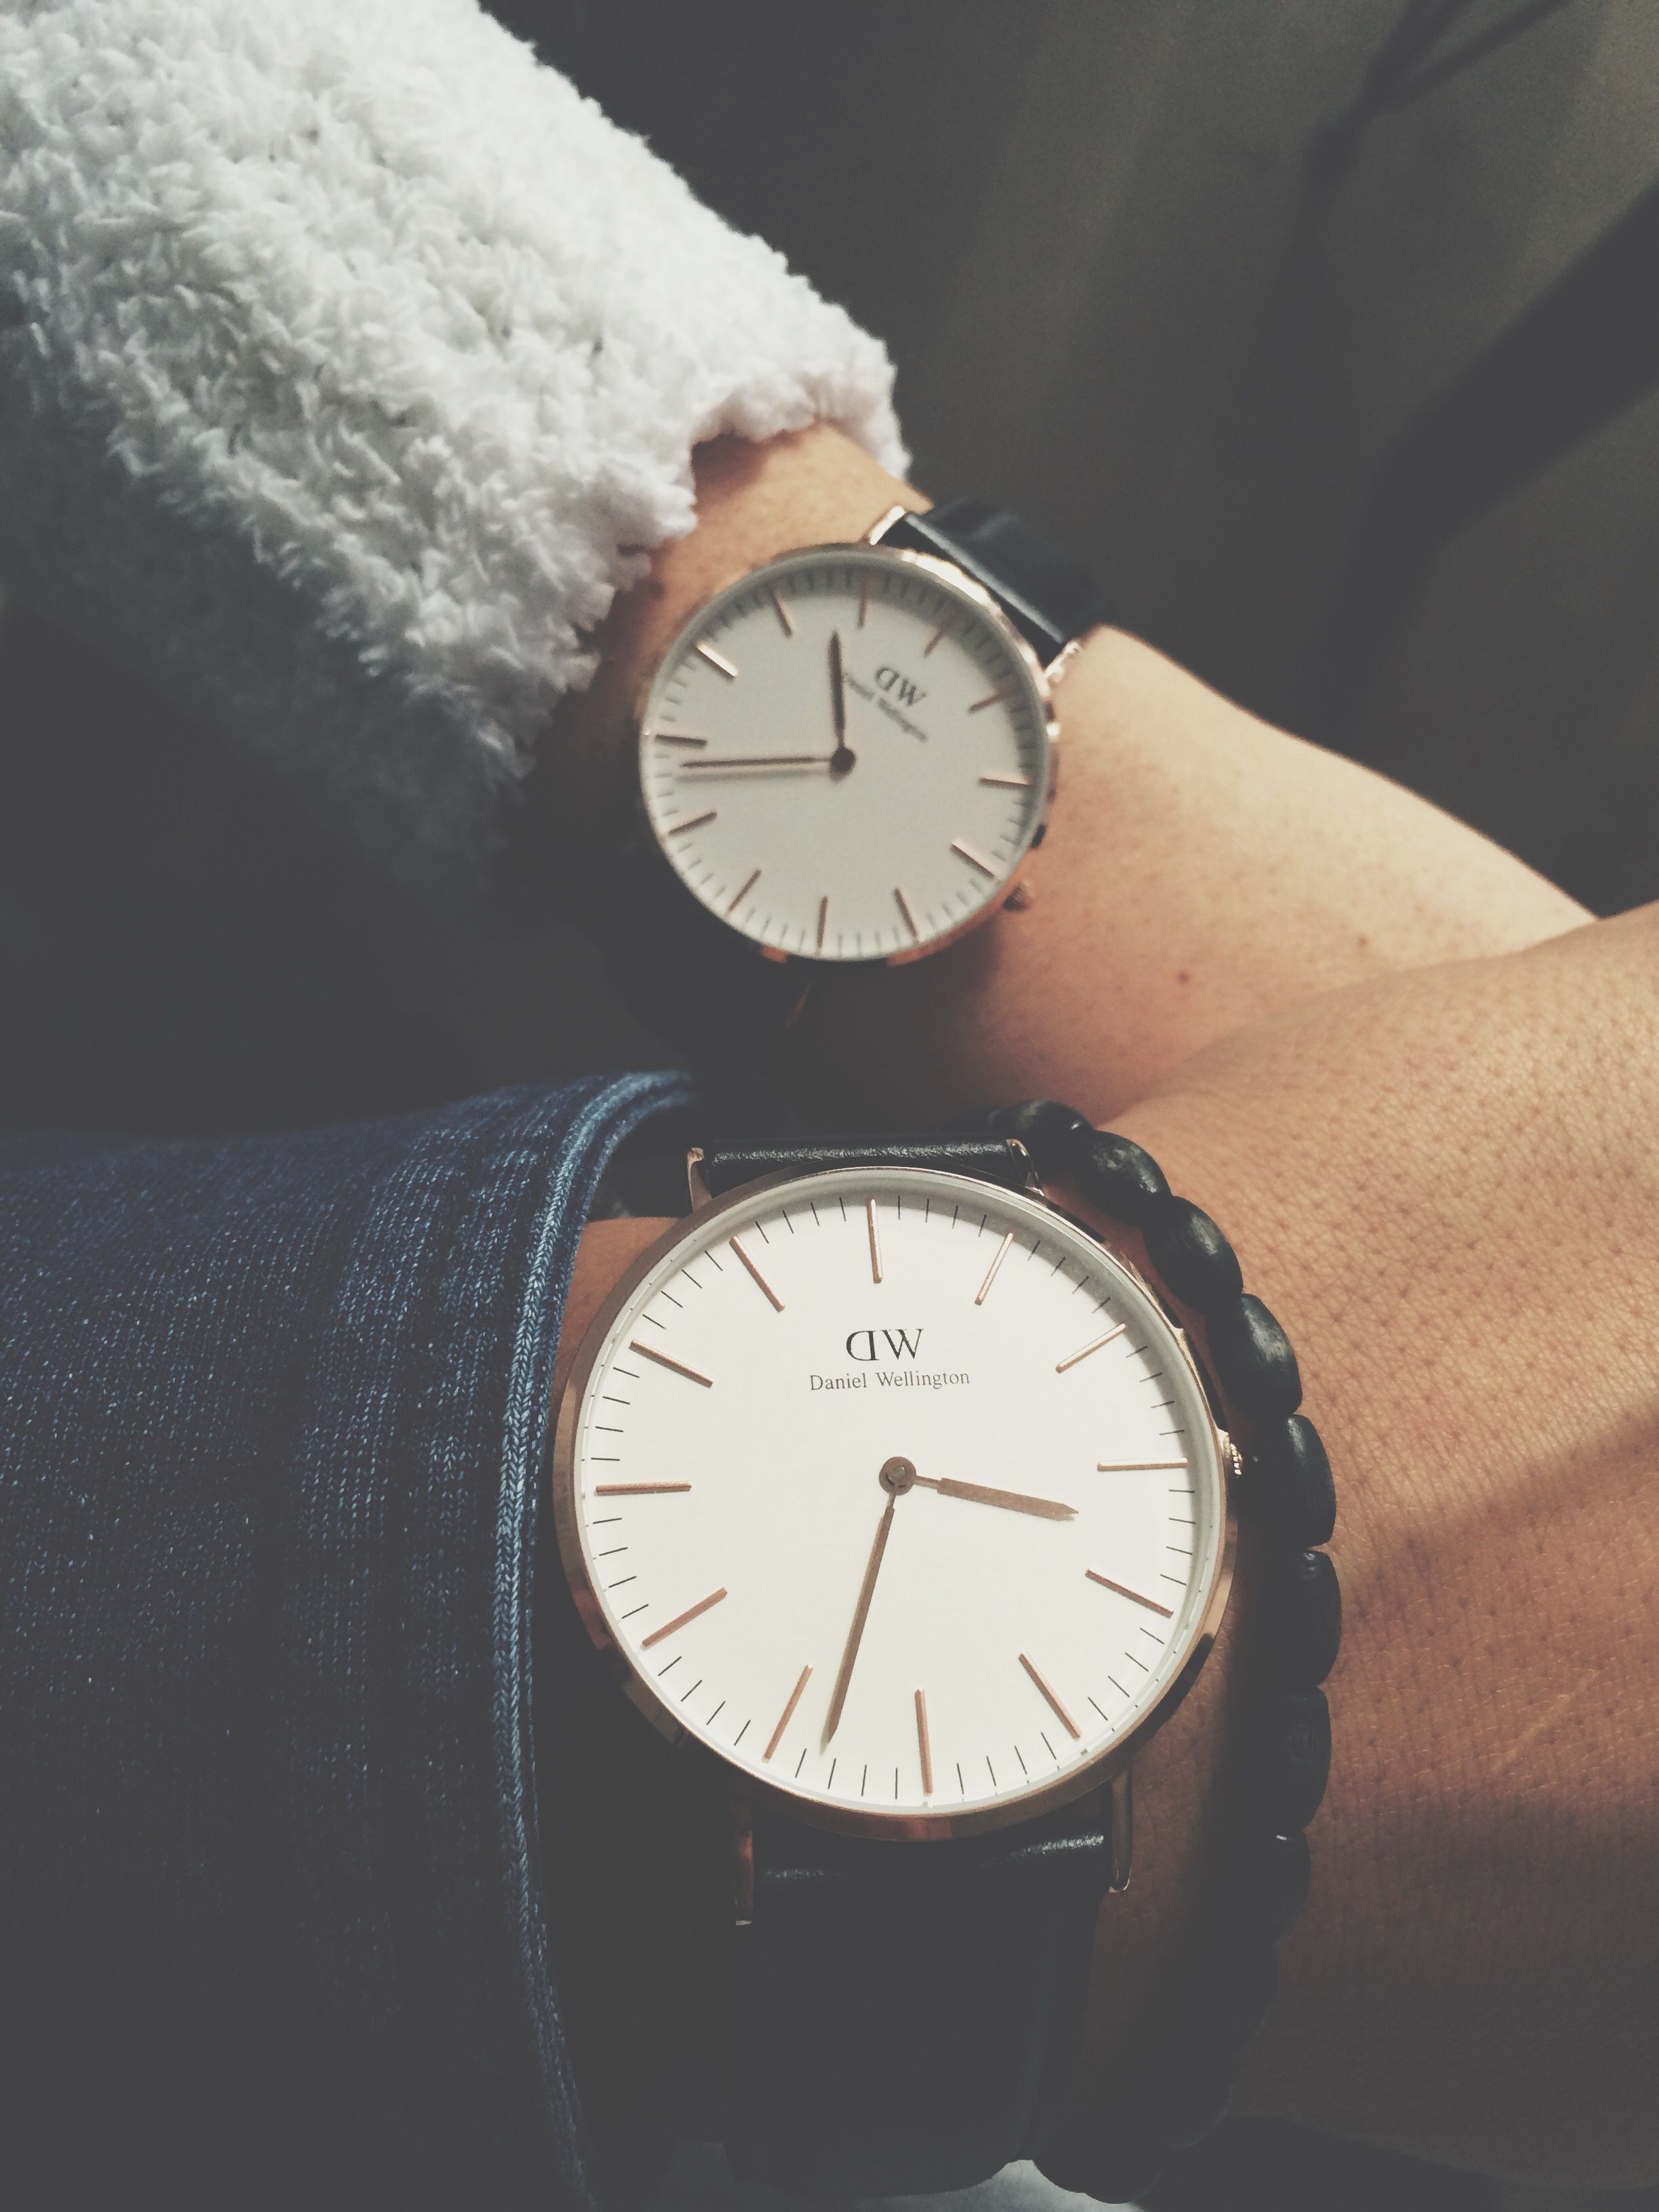 articles junghans watches value form a proposition hero ixlib the rails dome